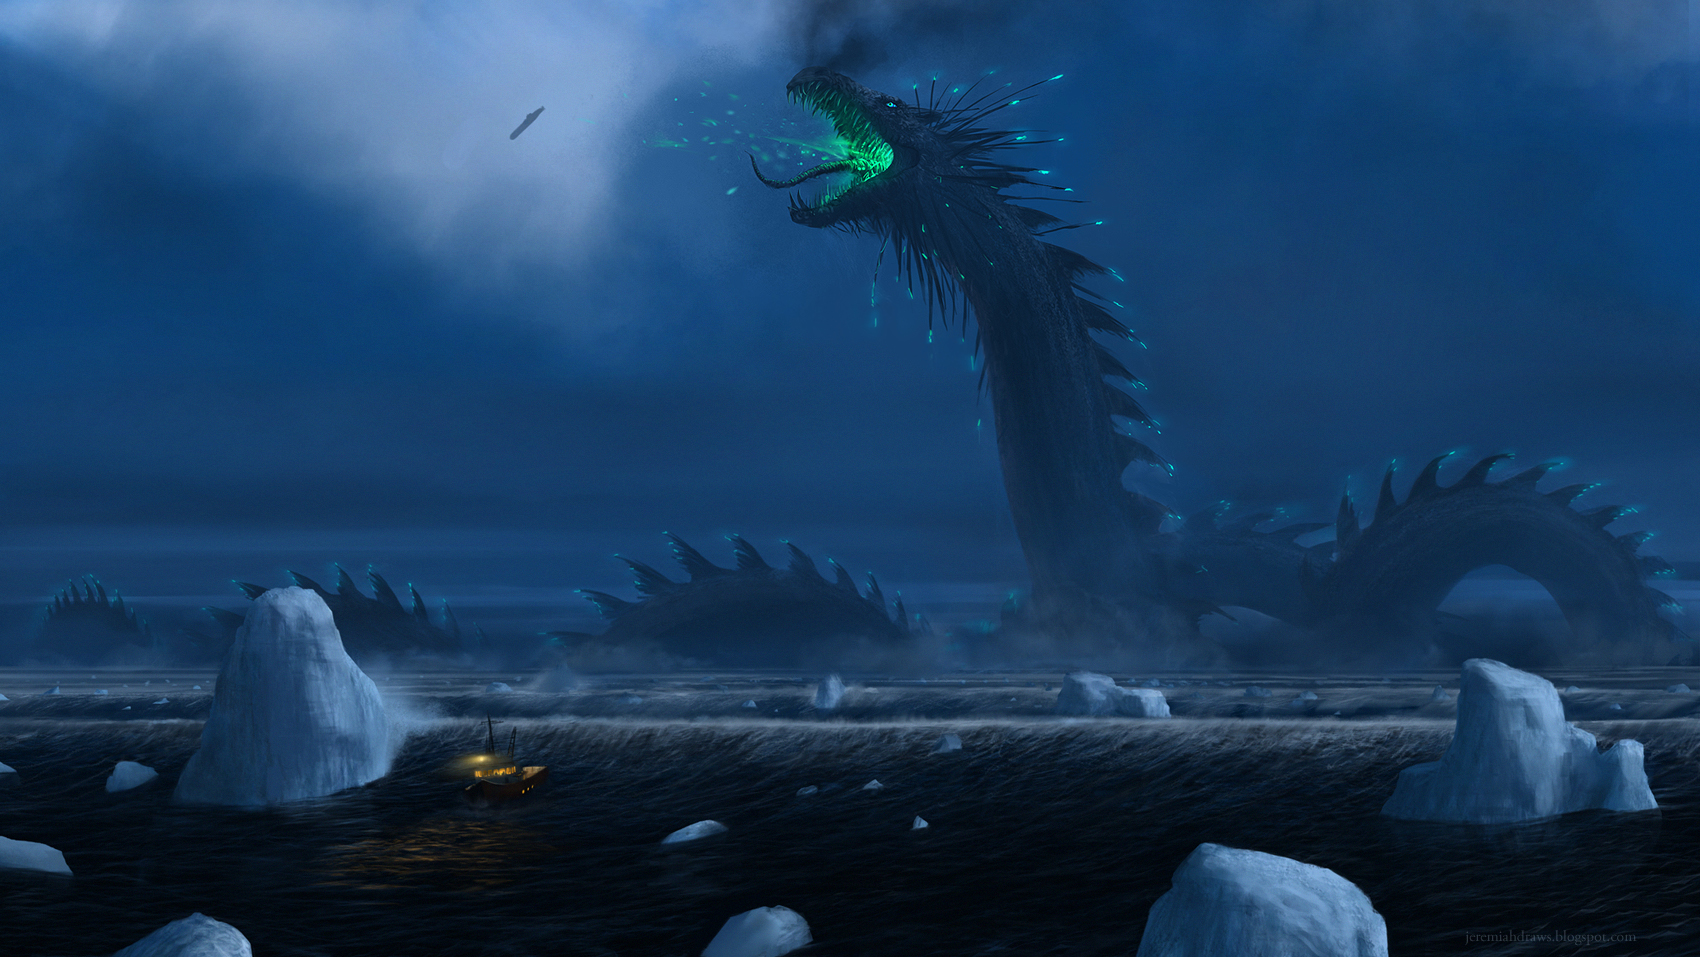 jormungandr__the_world_serpent_by_j_hump